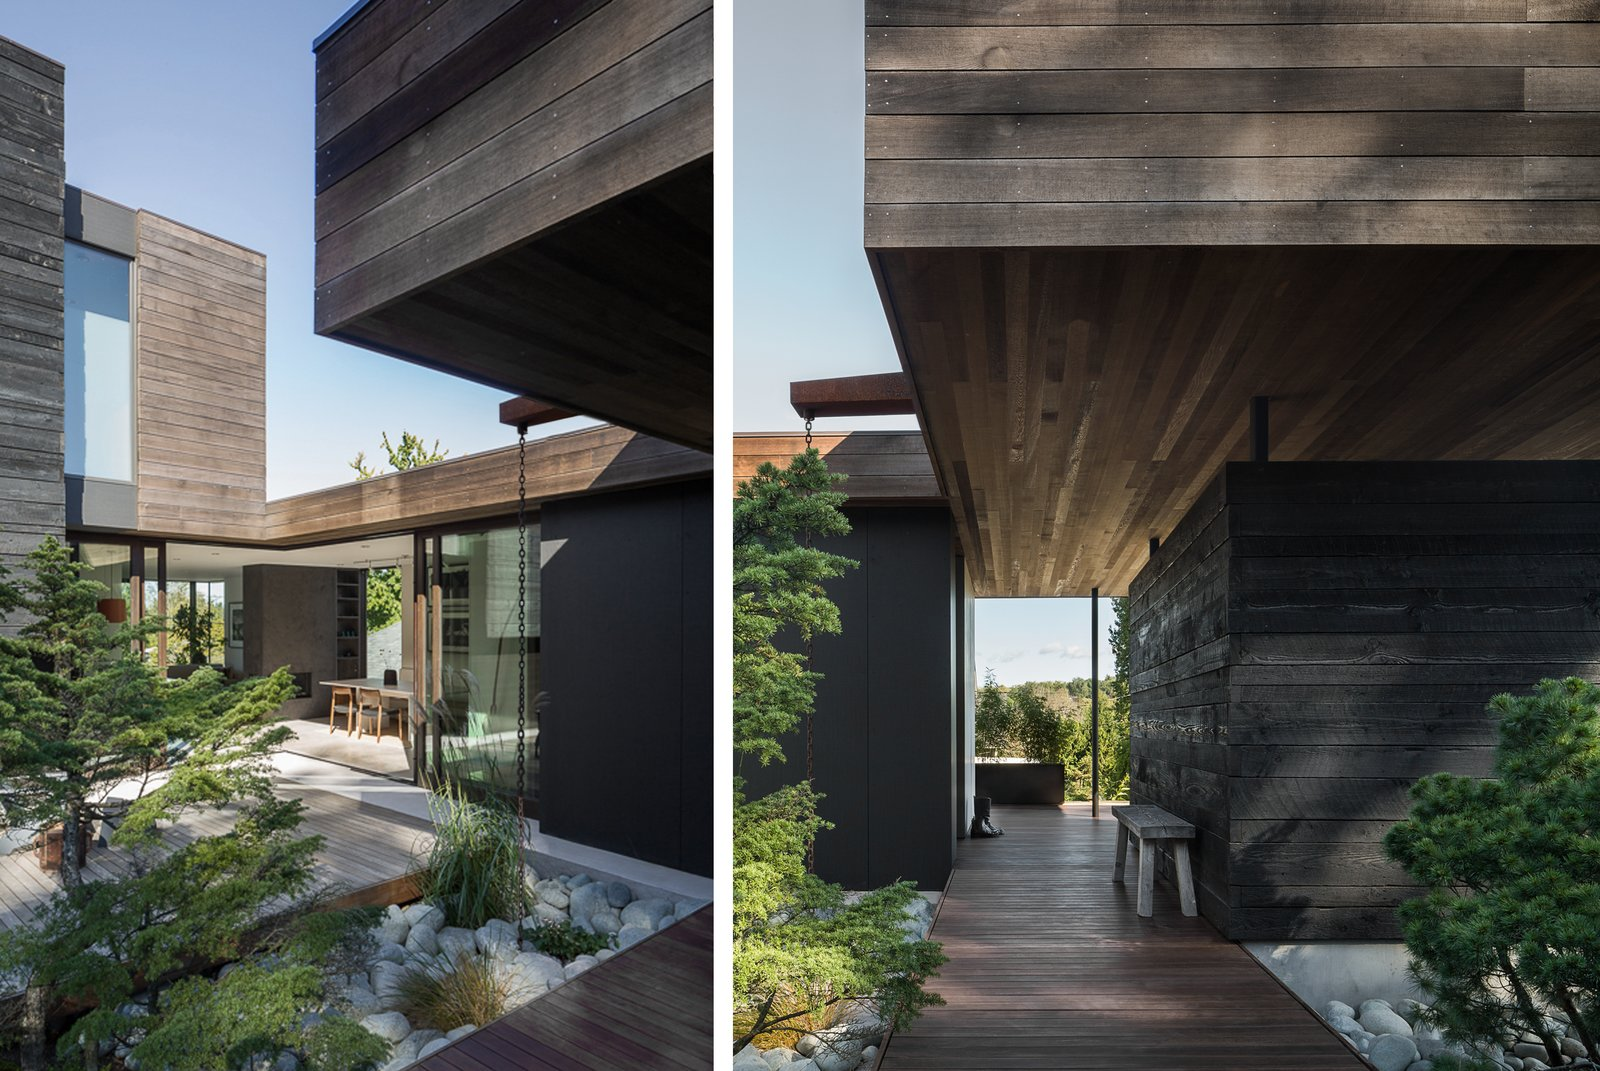 Helen Street by mw|works Tagged: Outdoor, Small Patio, Porch, Deck, and Wood Patio, Porch, Deck. Helen Street by mw|works